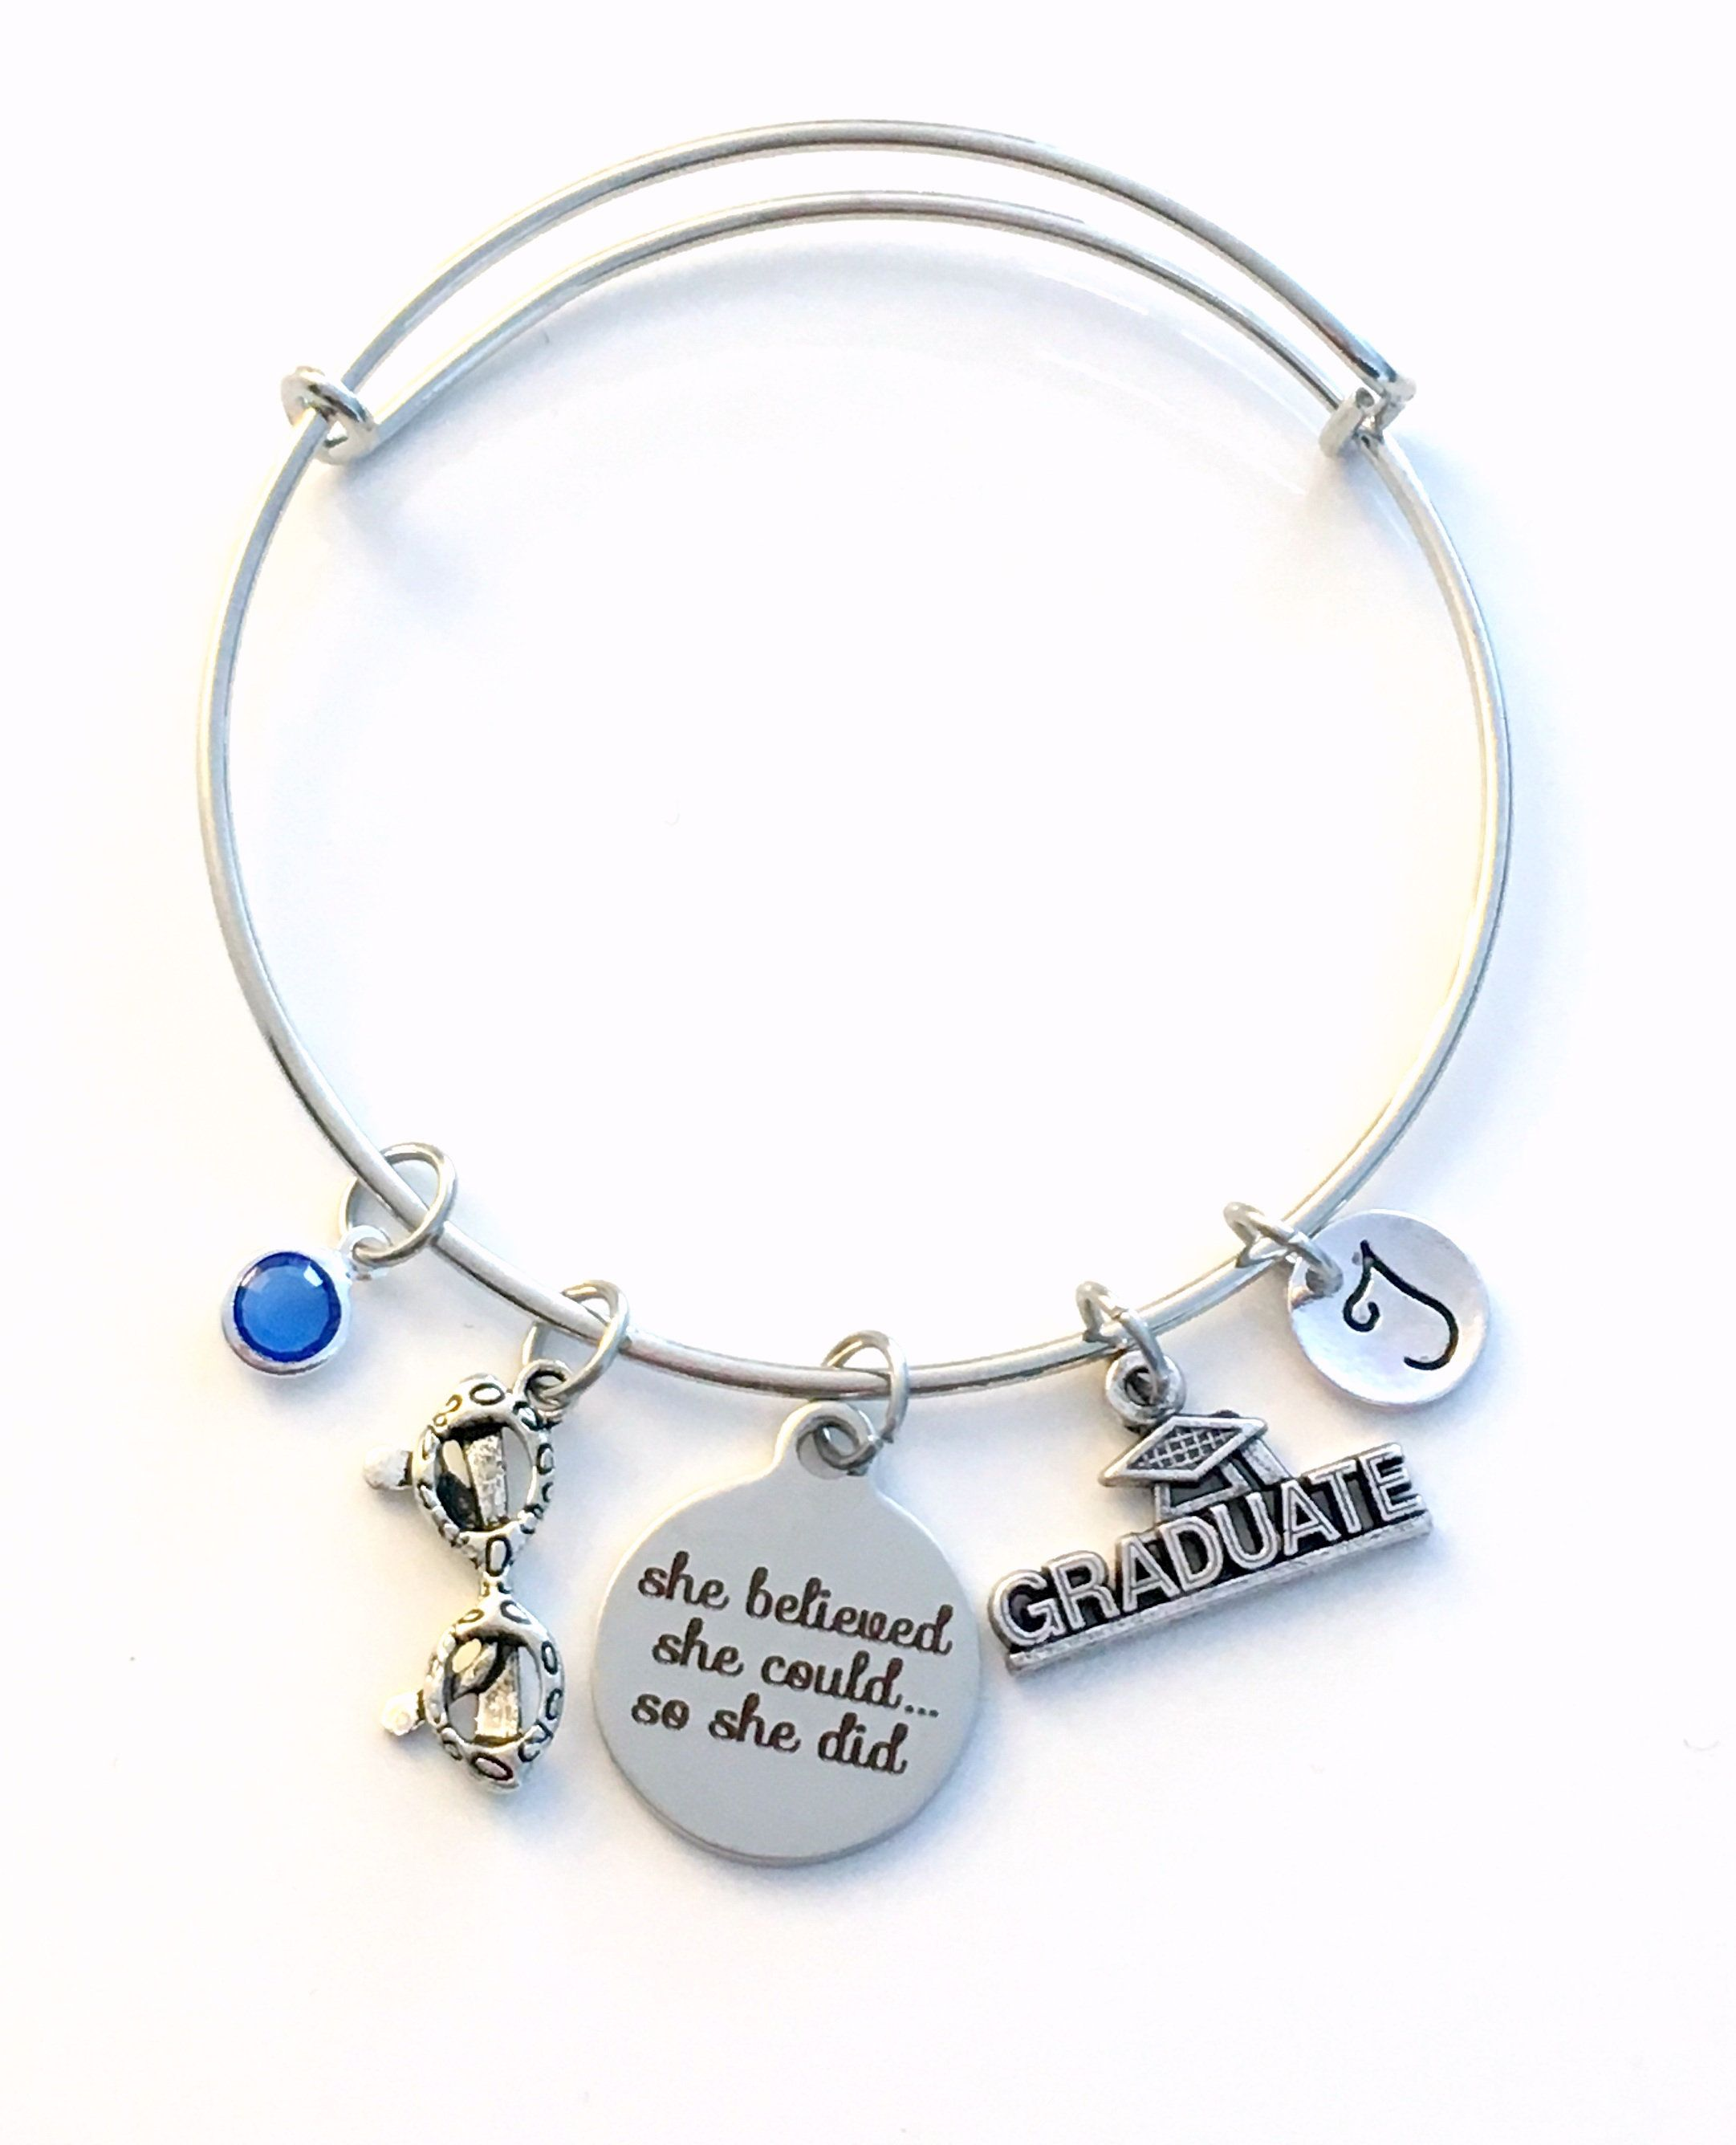 graduation bracelet yurman designs david indianapolis gift ideas